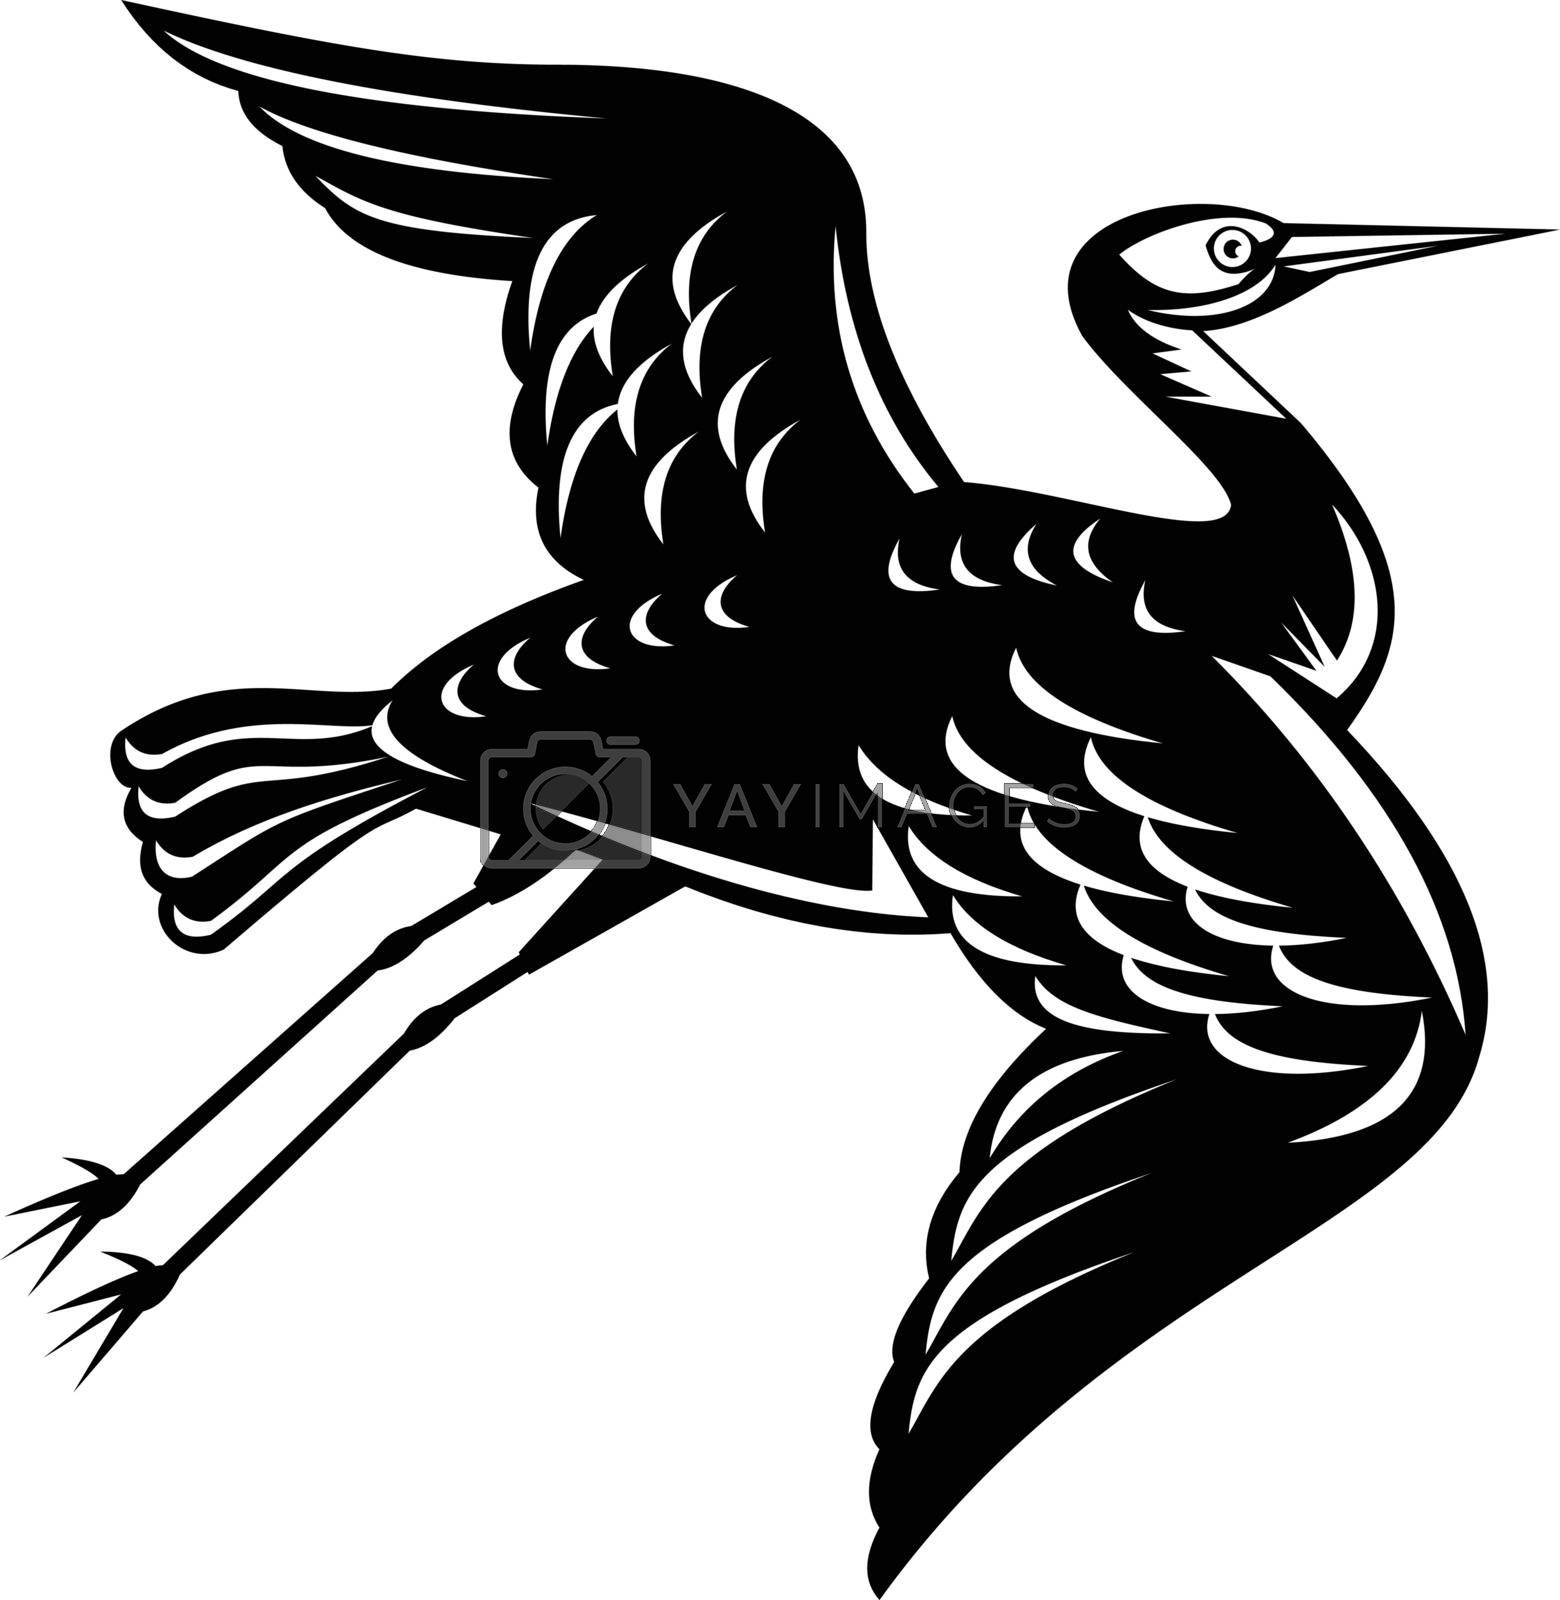 Retro woodcut style illustration of a white-faced heron Egretta novaehollandiae, white-fronted heron, grey heron or blue crane, a common bird in Australasia on isolated background in black and white.